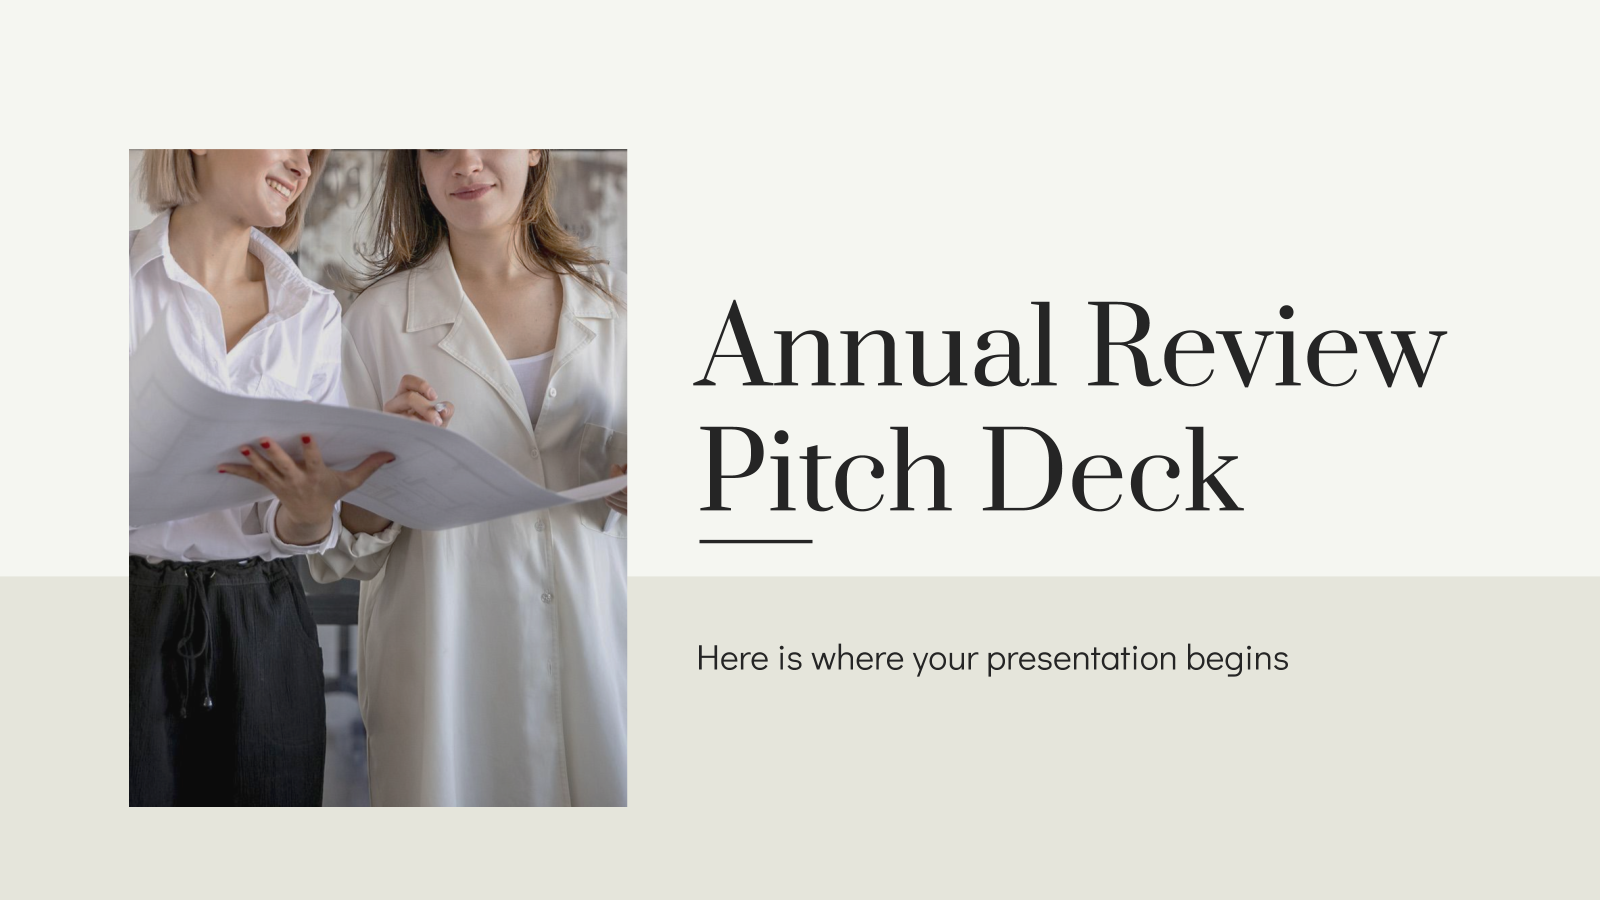 Annual Review Pitch Deck presentation template